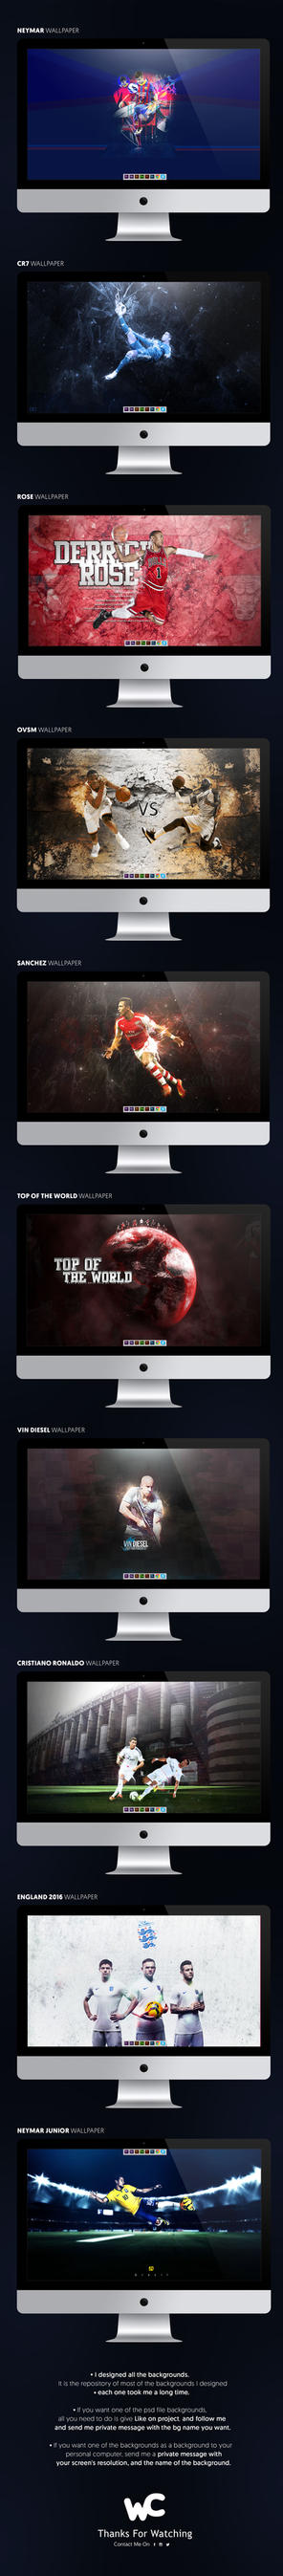 Wallpapers Collection by MarkARTGD